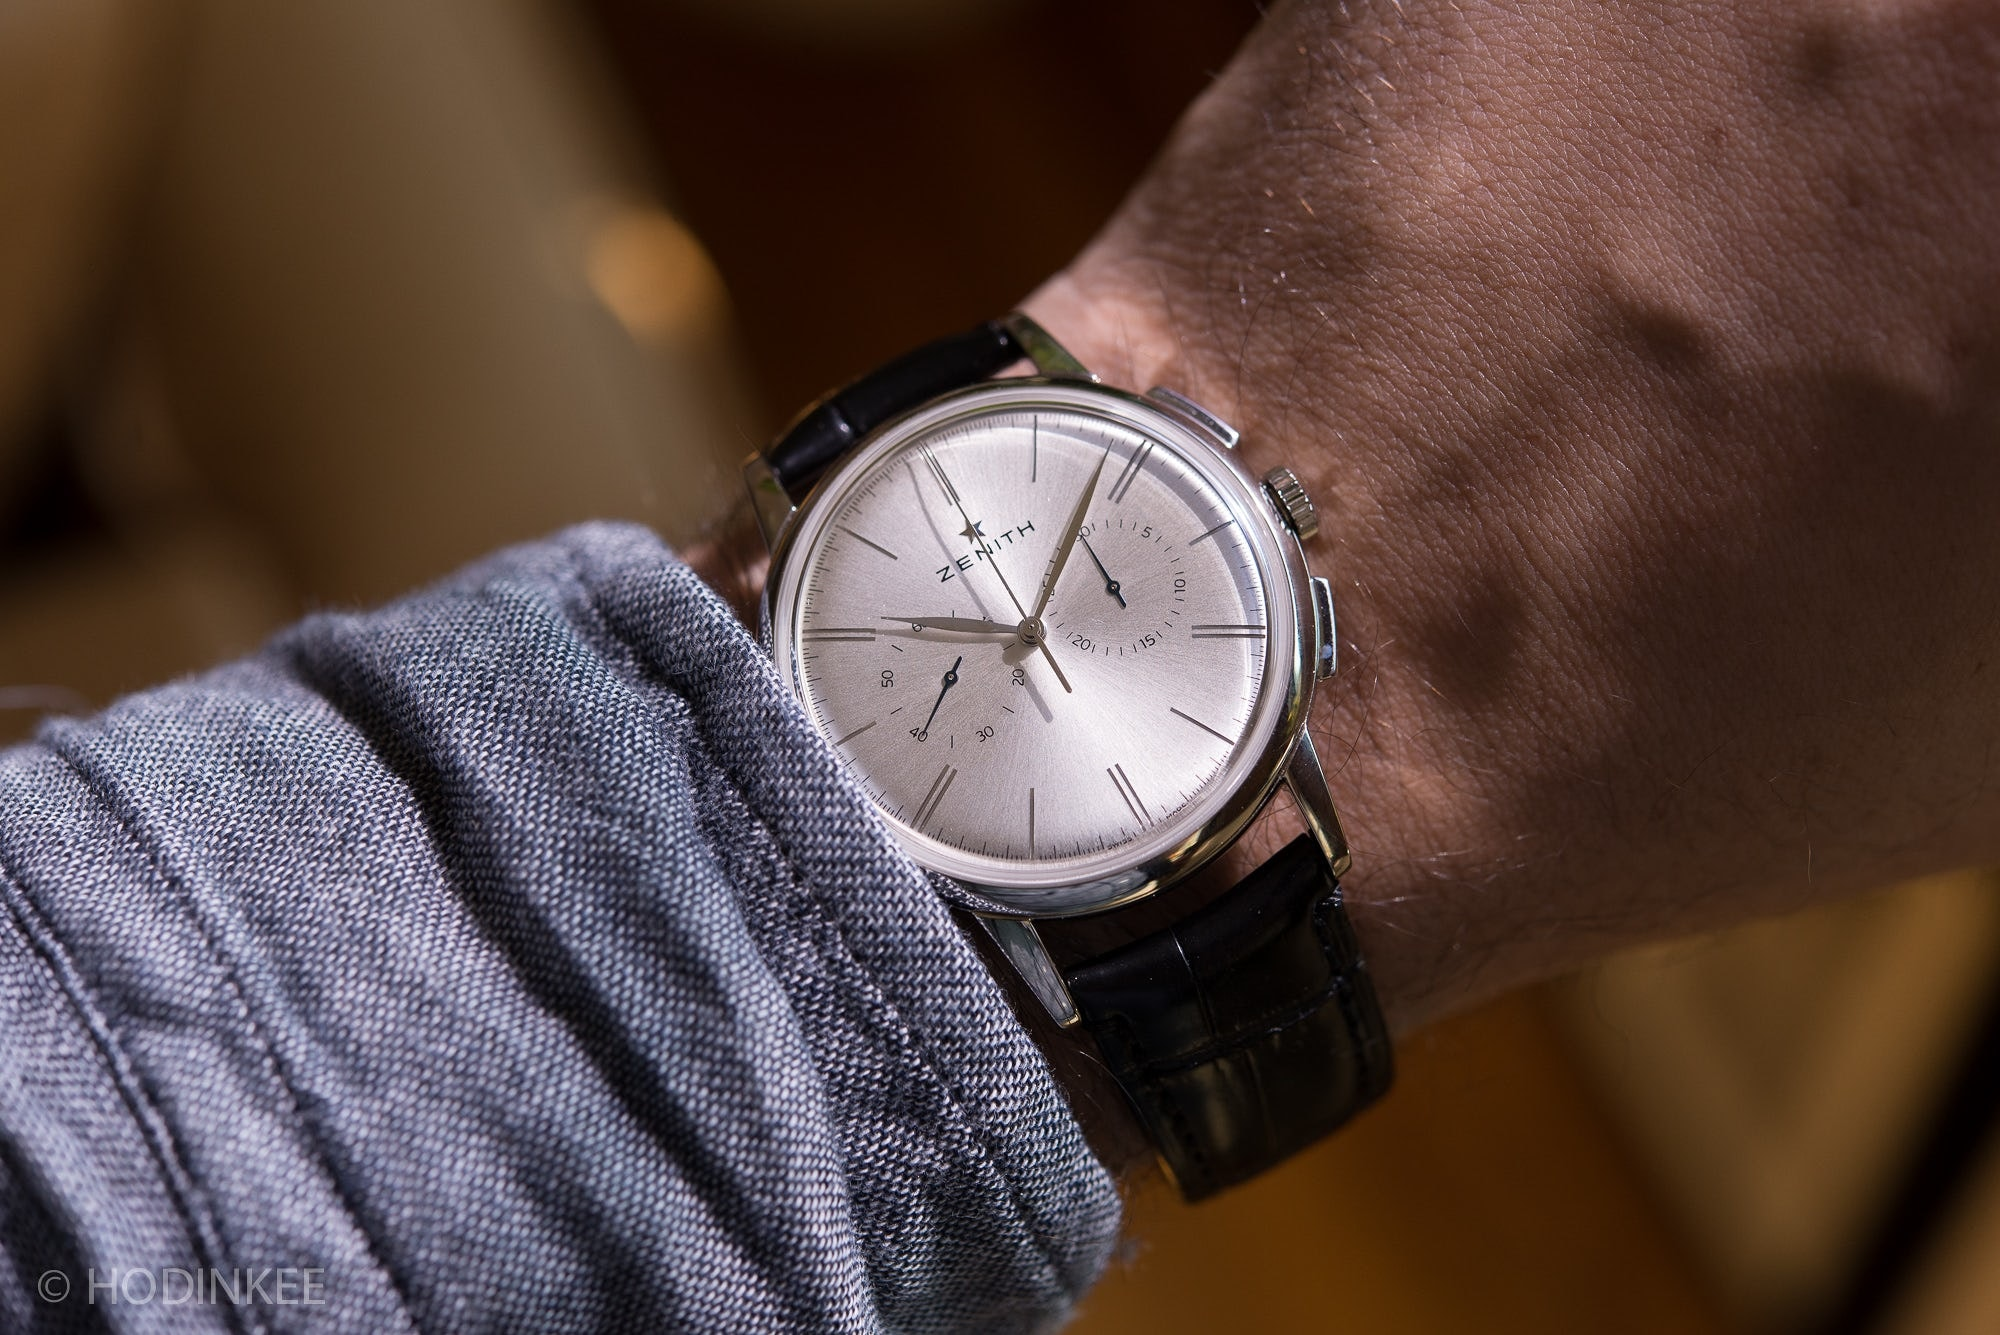 Happenings: Register Now For The HODINKEE 10th Anniversary Weekend Zenith